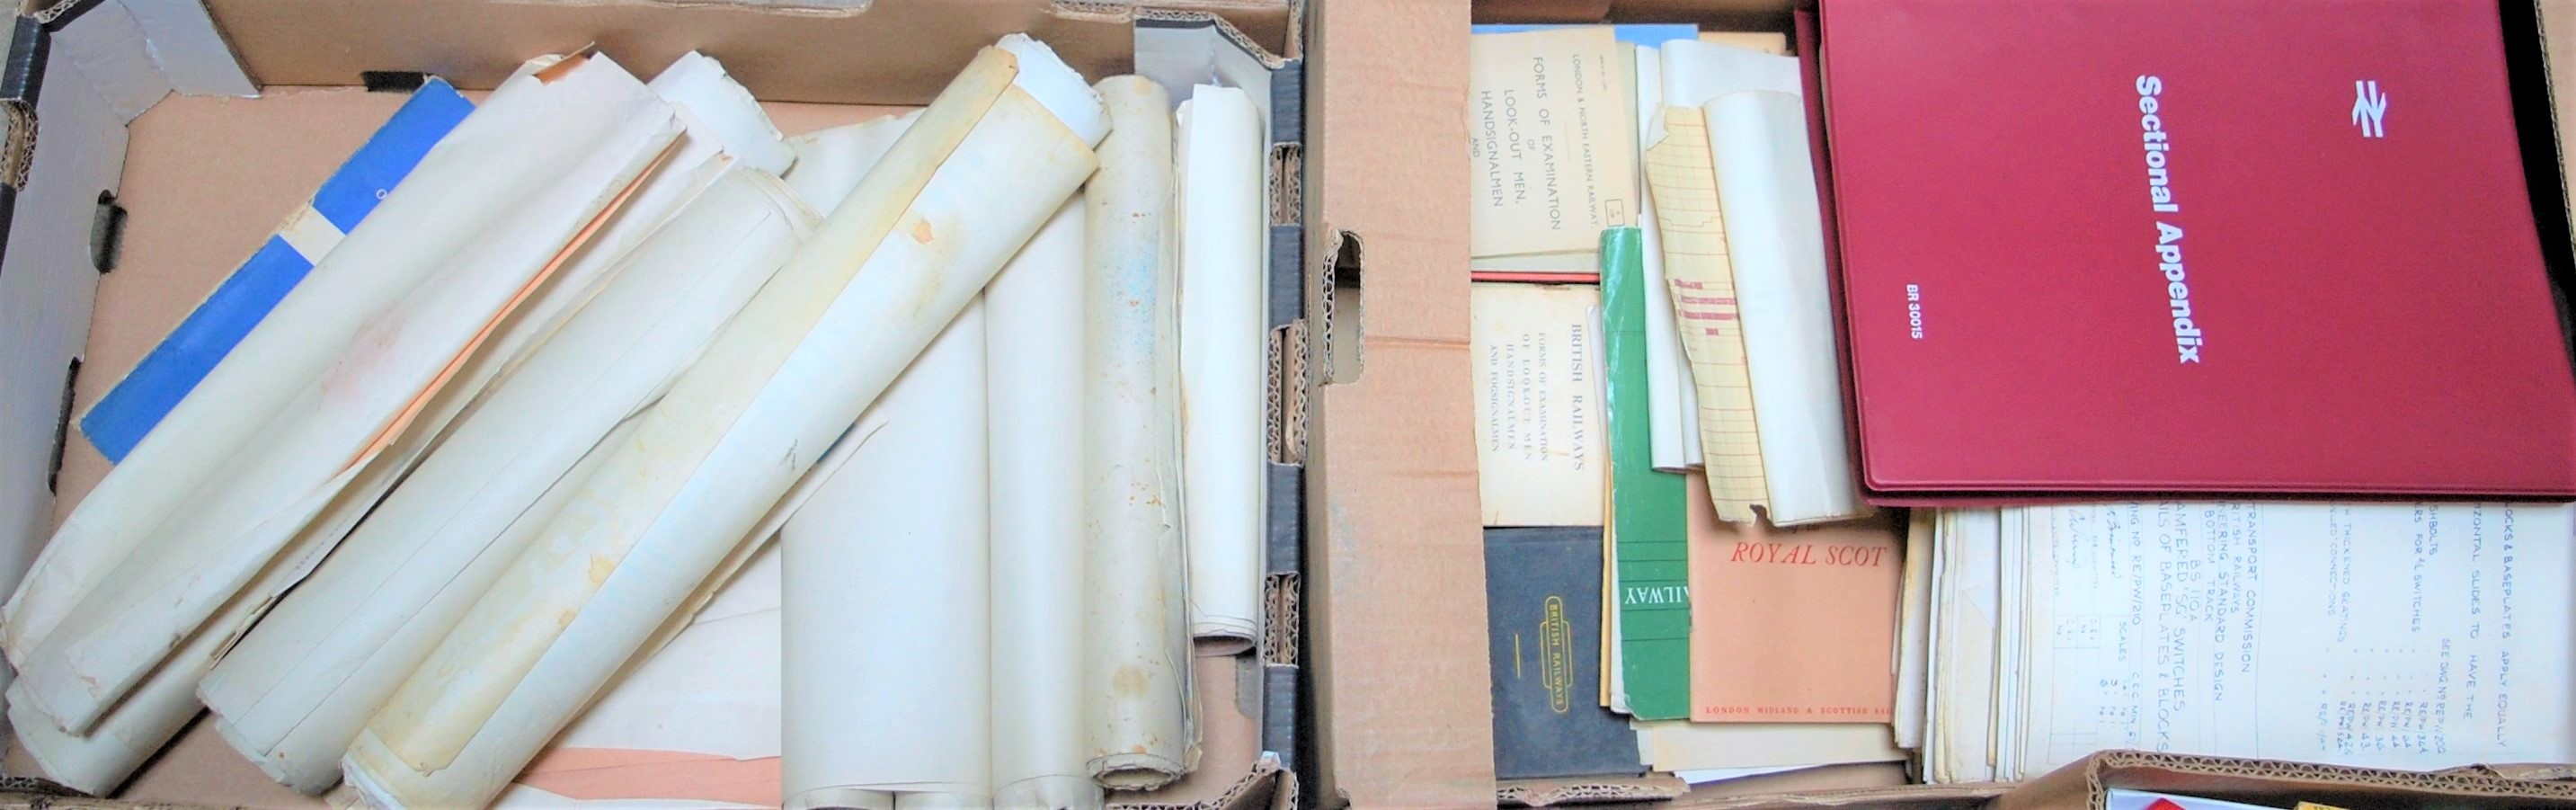 Lot 26 - Two trays containing civil engineers reference material track diagrams, working time tables, soft